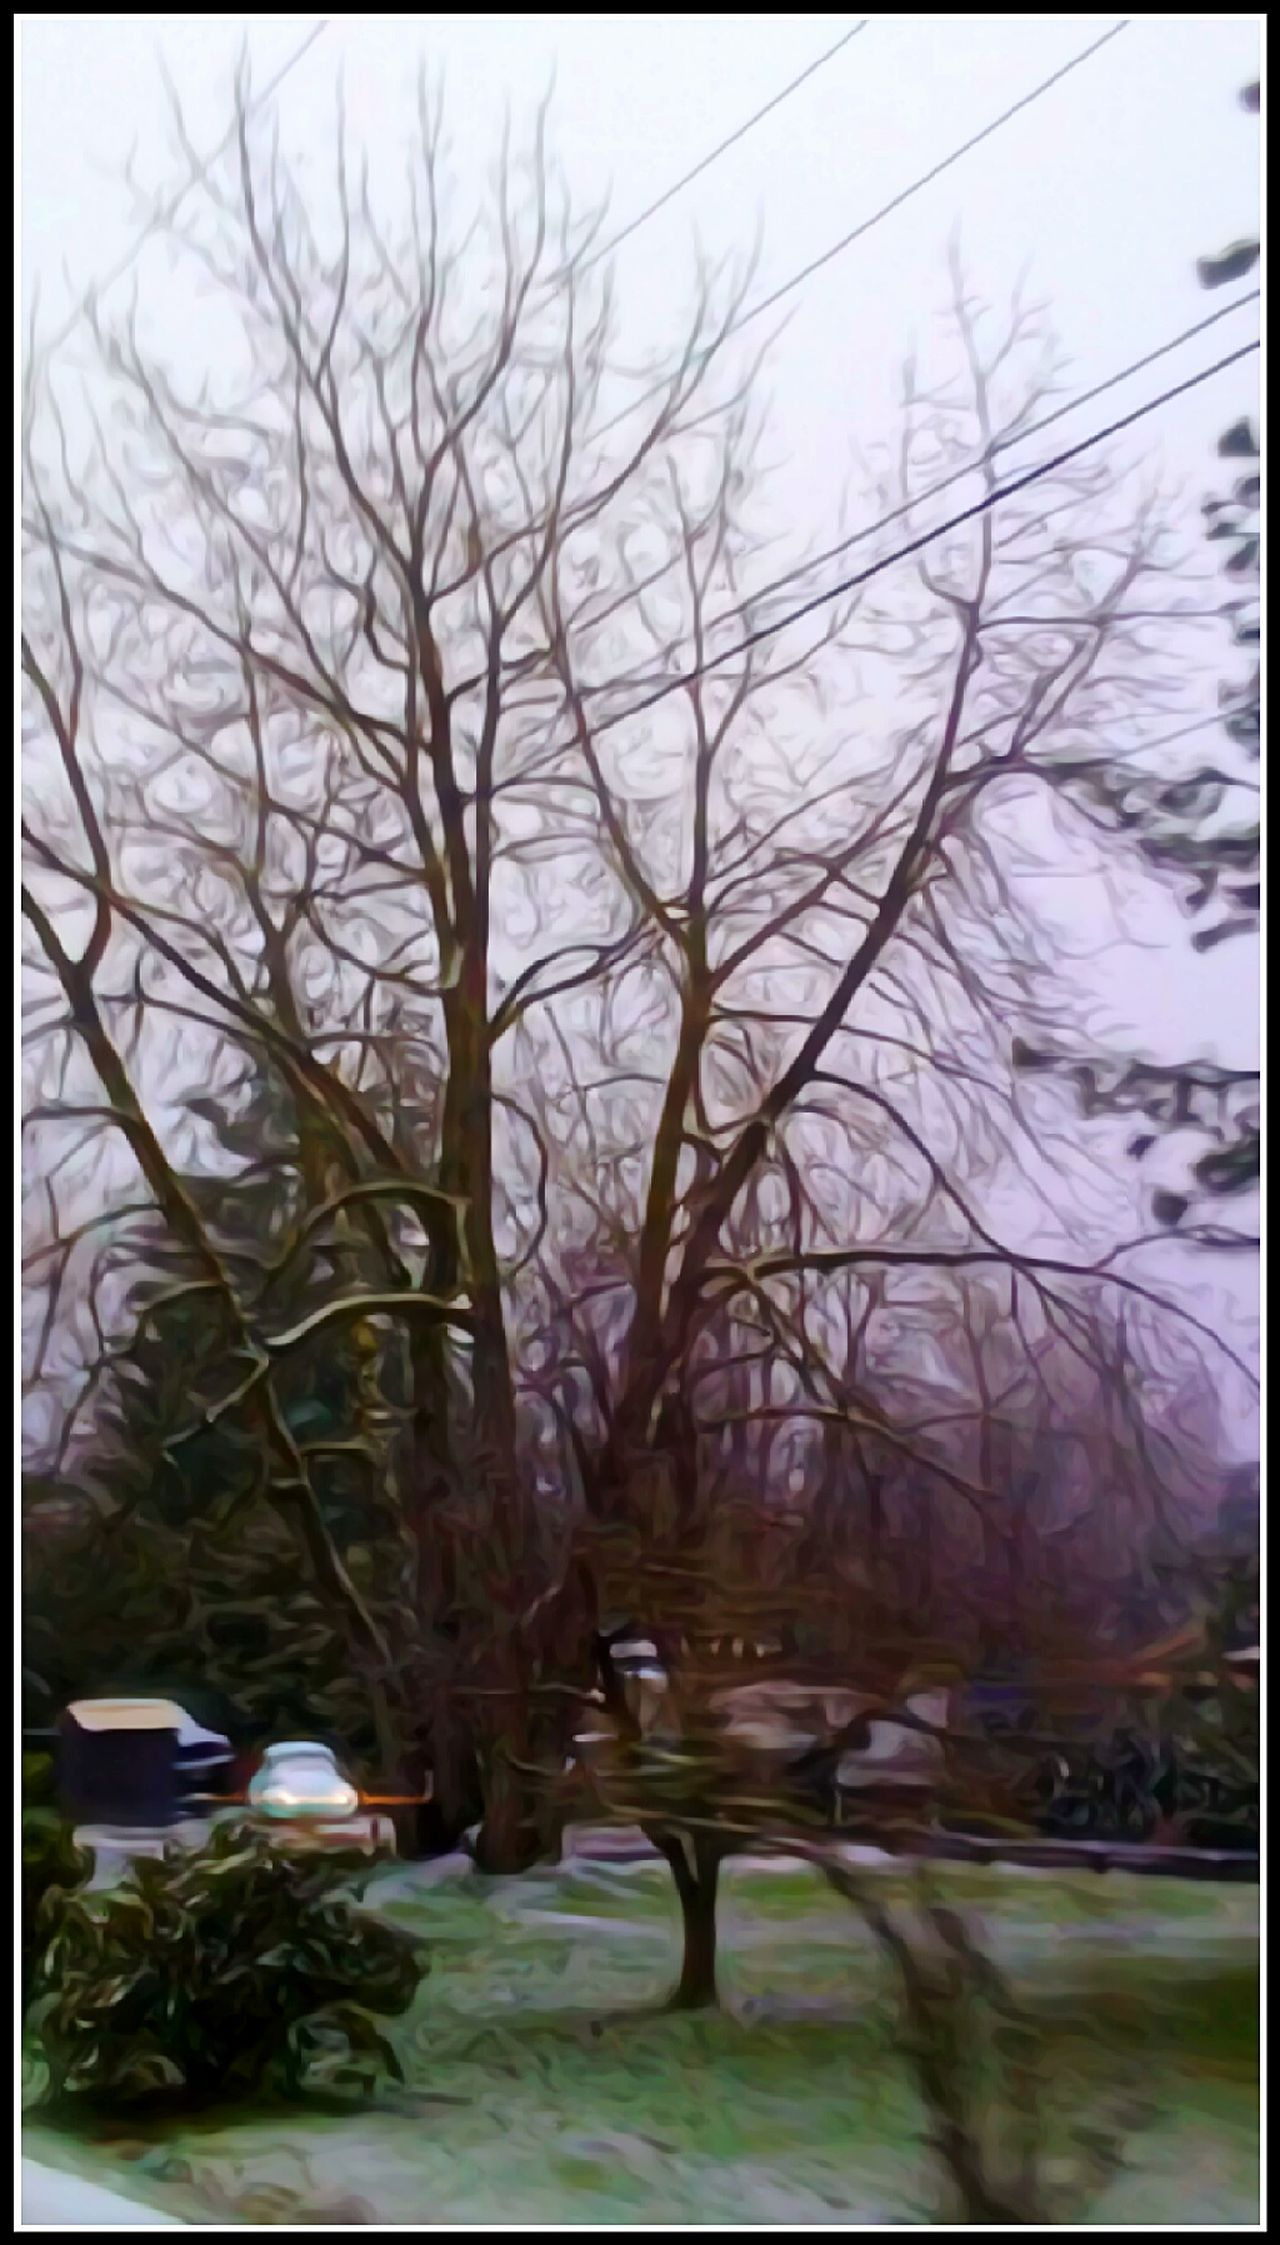 Its Begining To Look A Lot Like CHRISTMAS Slug Bug Branch Nature Bare Tree Built Structure Outdoors Tranquility Beauty In Nature Architecture Oregon Girl Oregon Explored Original Photography For The Love Of Art The Way Forward Cold Temperature Variation Landscape Idyllic Fragility Focus On Foreground My Year My View Waiting Game Cellphone Photography Artistic Perception